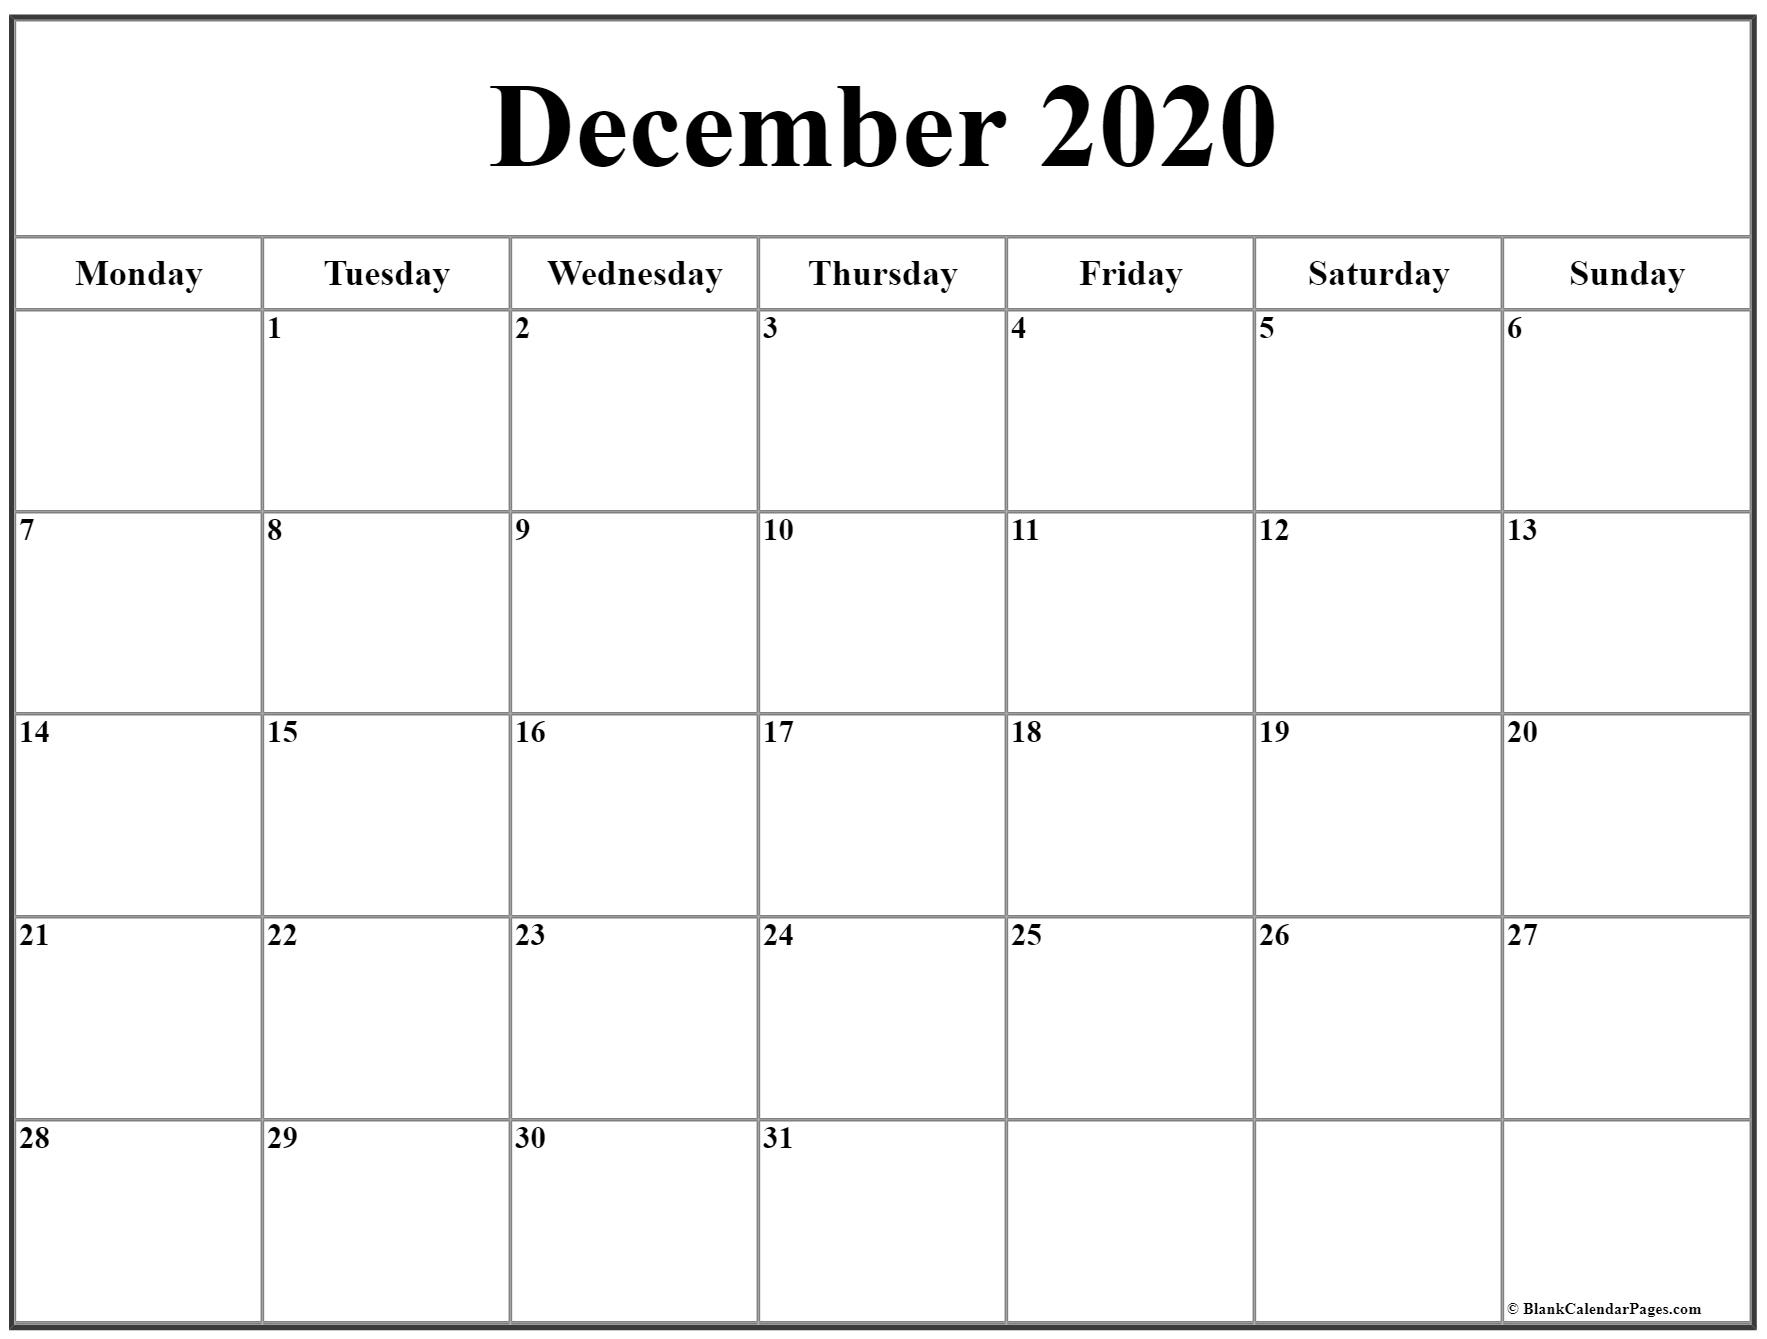 December 2020 Monday Calendar | Monday To Sunday intended for Printable Monday Calendar Monday Start